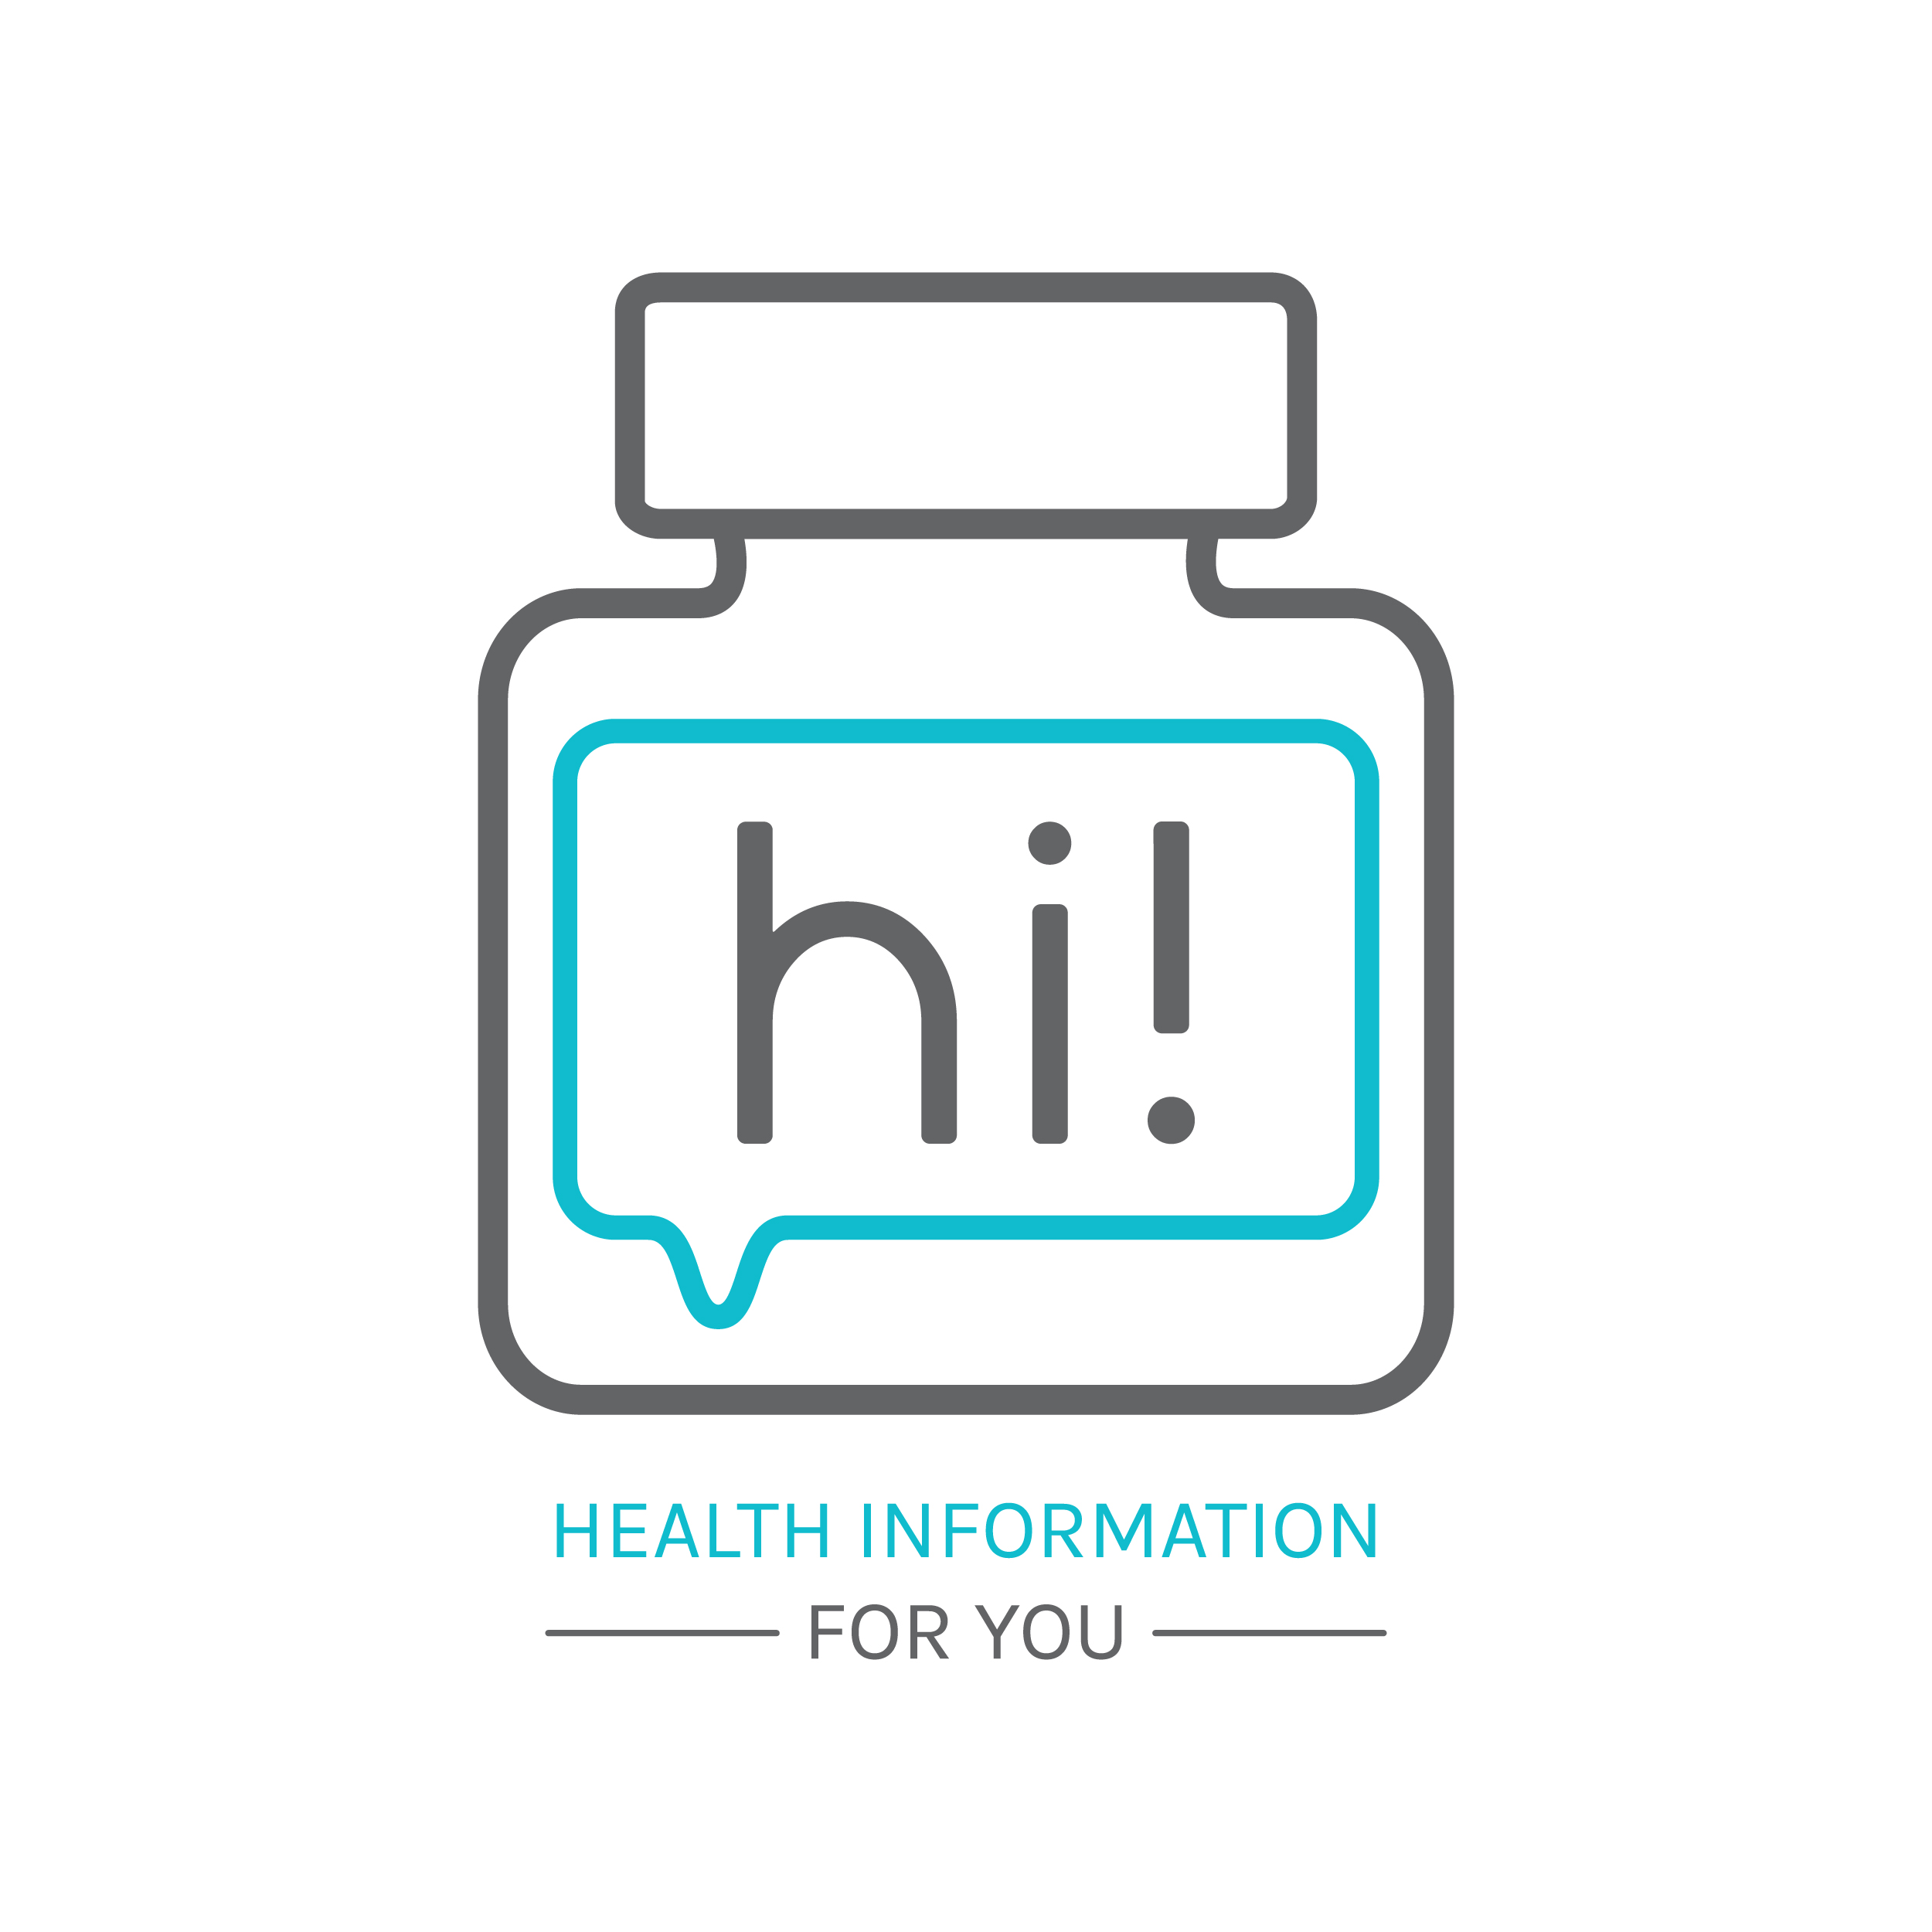 hi! - Health Information For You